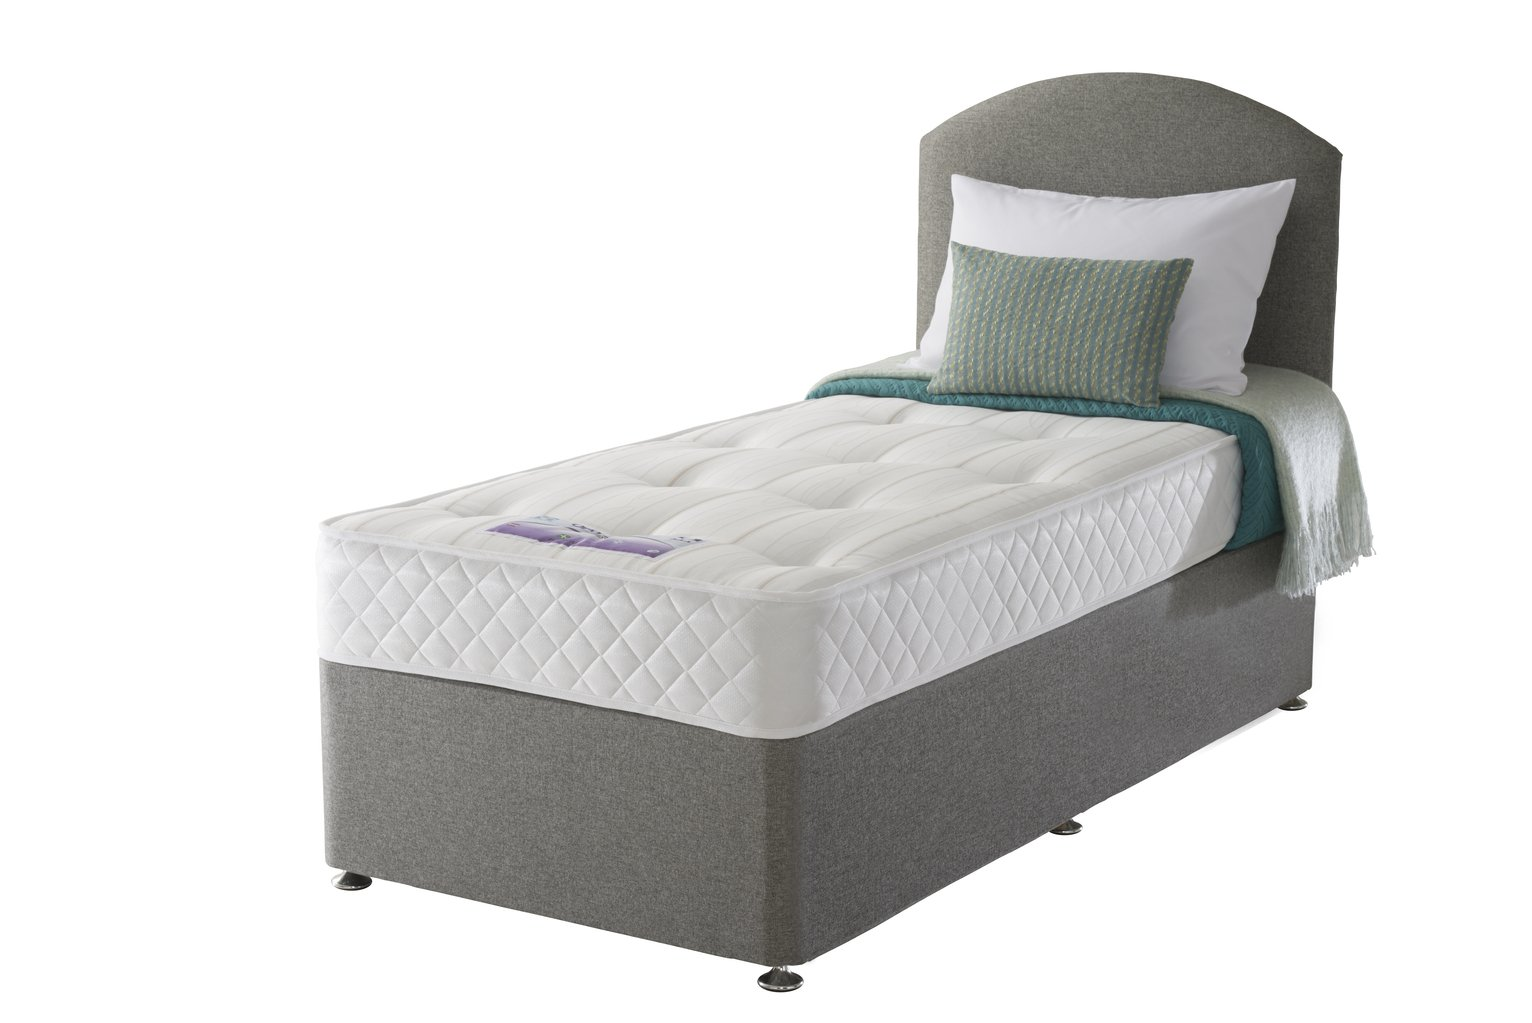 Image of Sealy - Posturepedic Firm Ortho Single - Divan Bed